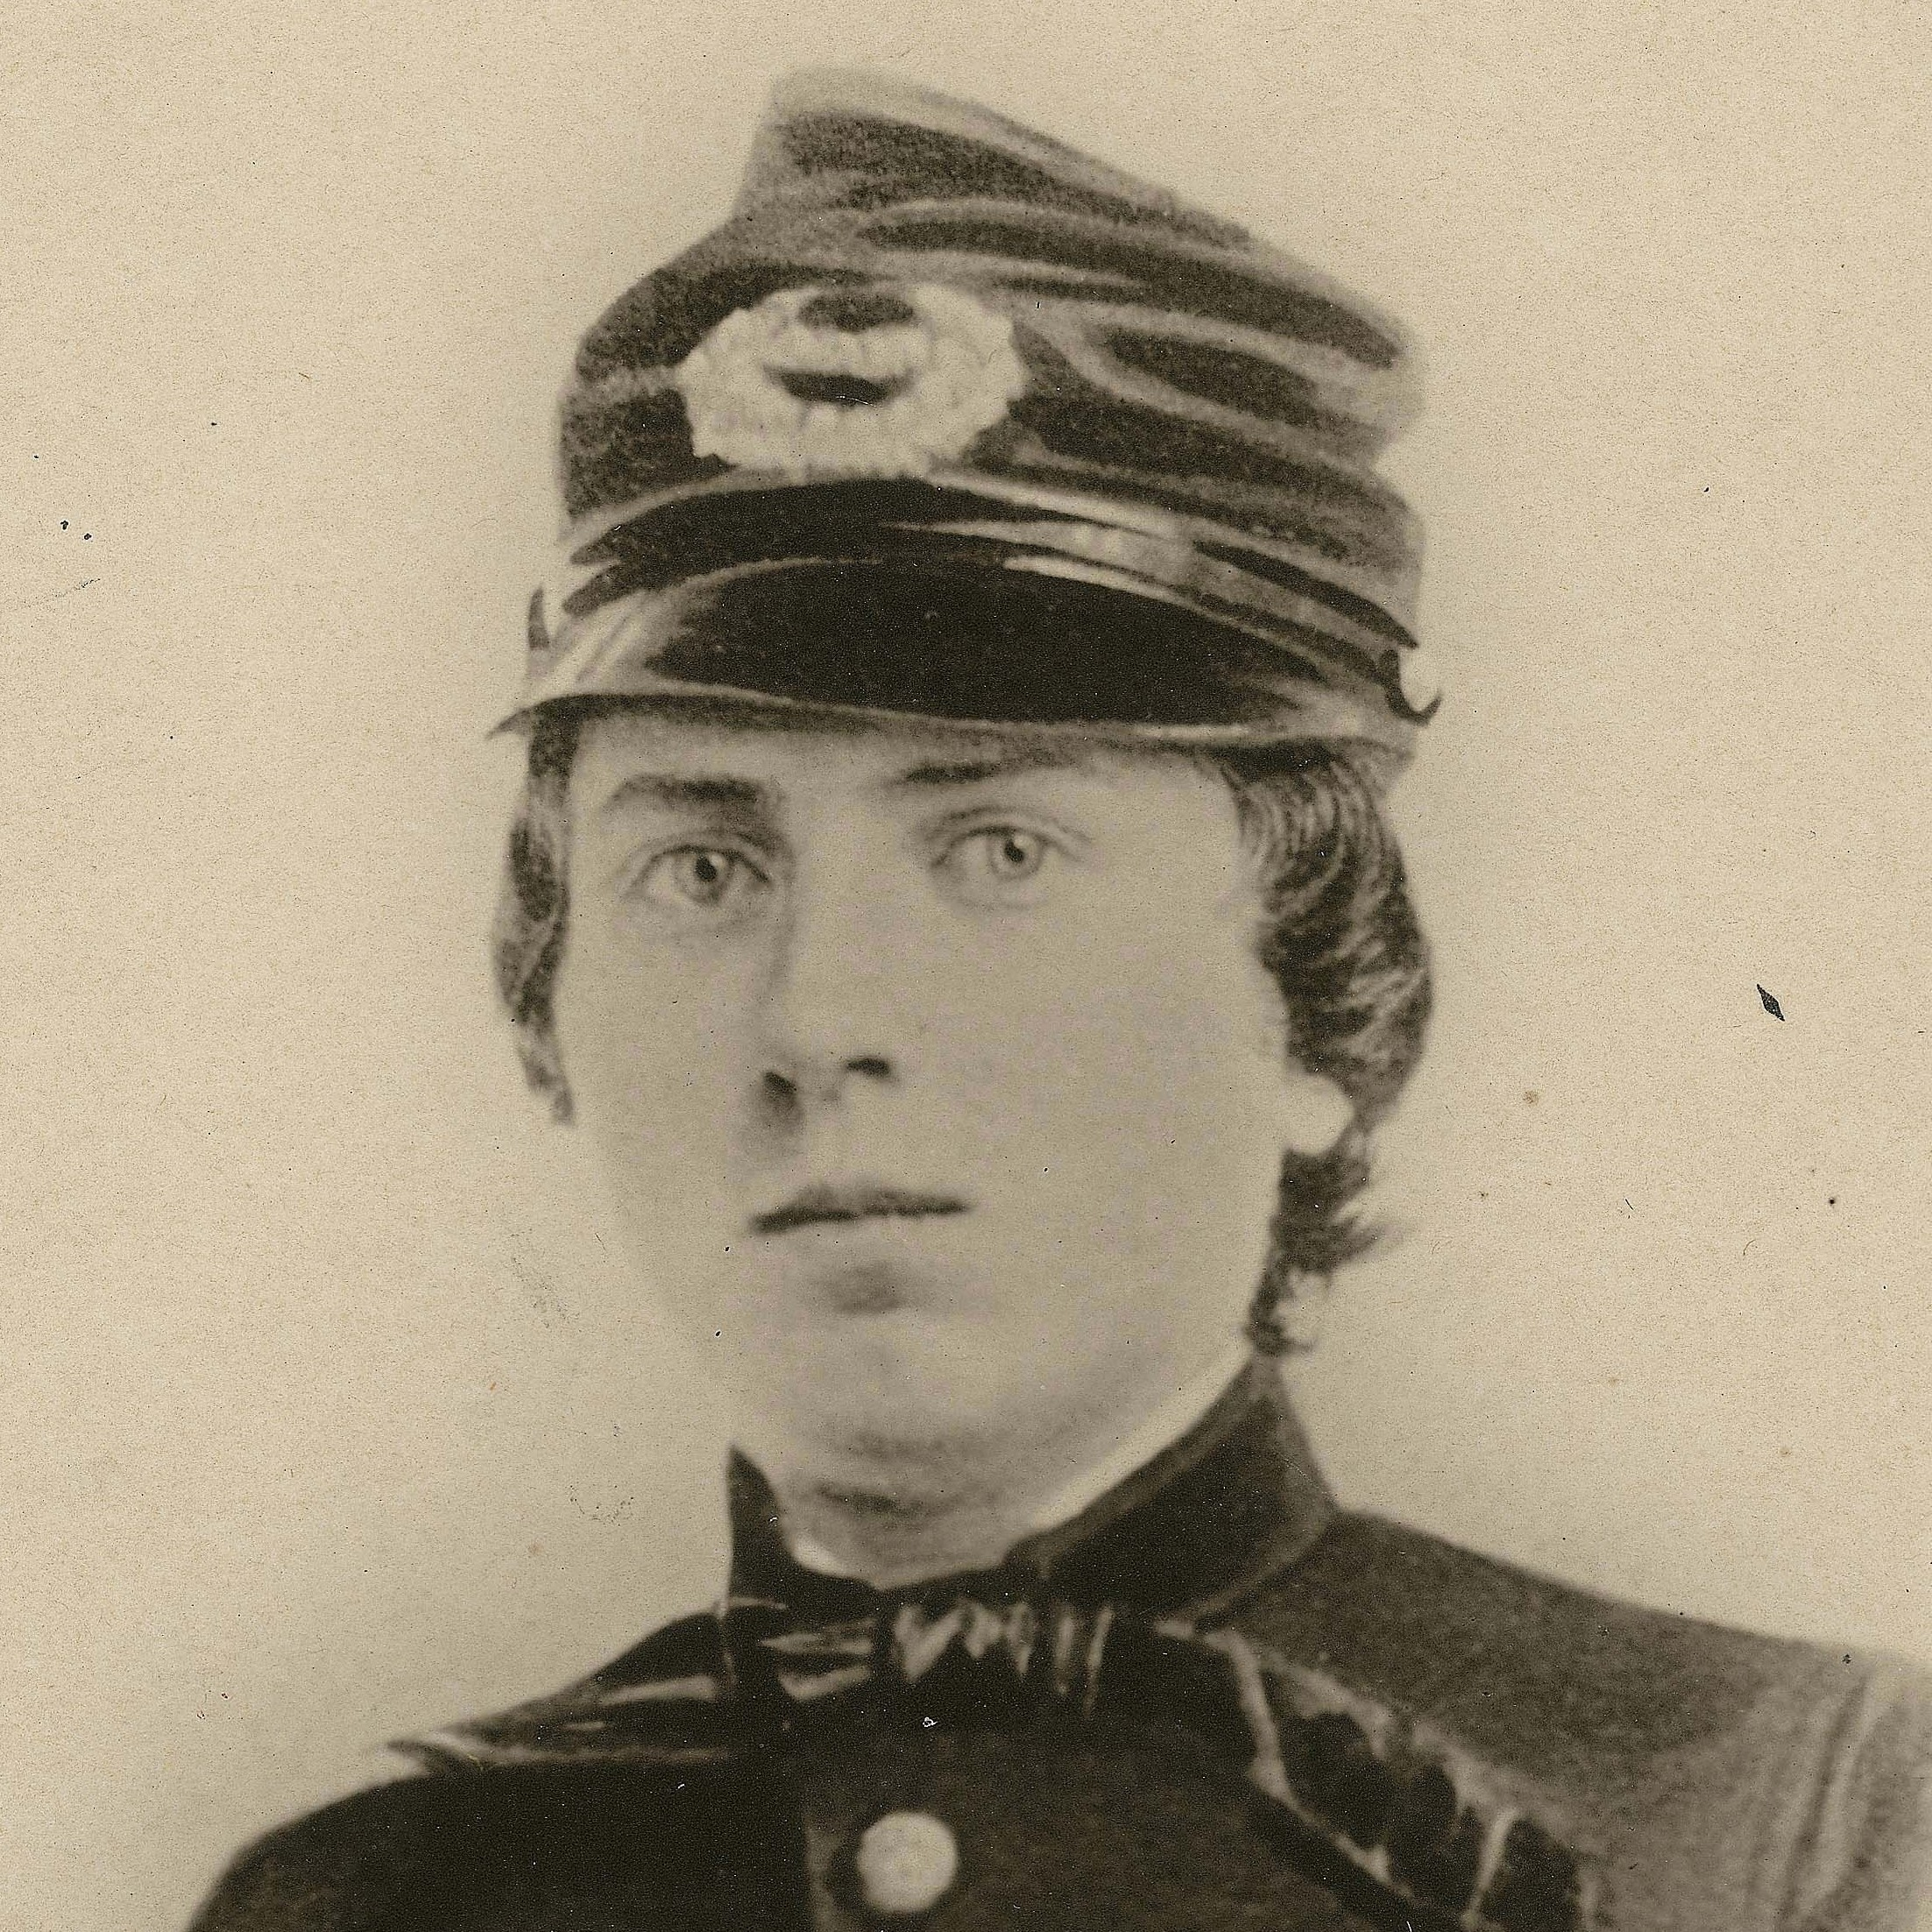 First Lt. Alonzo Cushing, shown in an undated photo provided by the Wisconsin Historical Society, is expected to get the nation's highest military decoration this summer -- the Medal of Honor -- nearly 150 years after he died at the battle of Gettysburg.